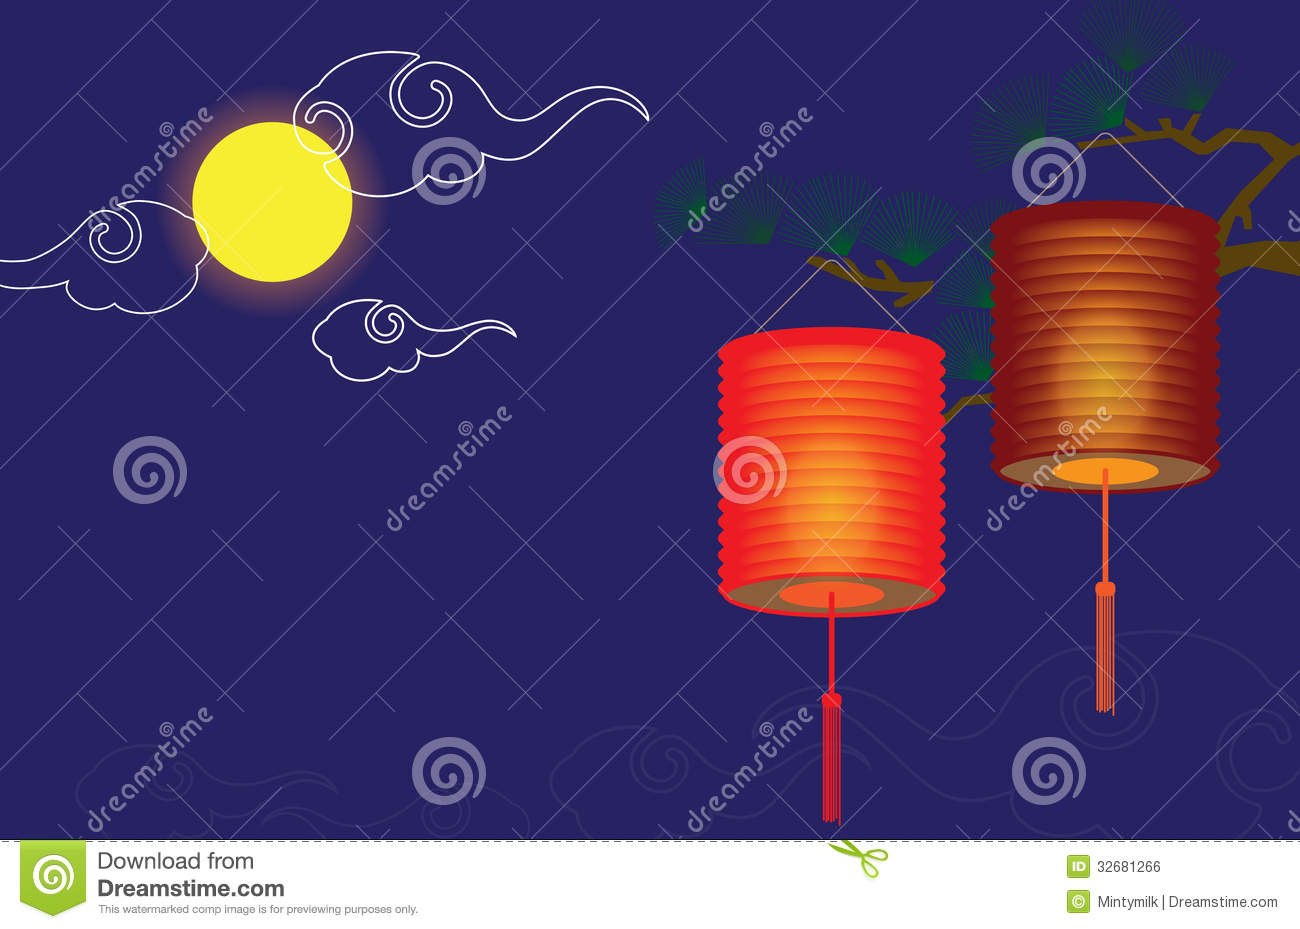 56 Sample Of Chinese New Year Greeting Cards Year Chinese Sample Of